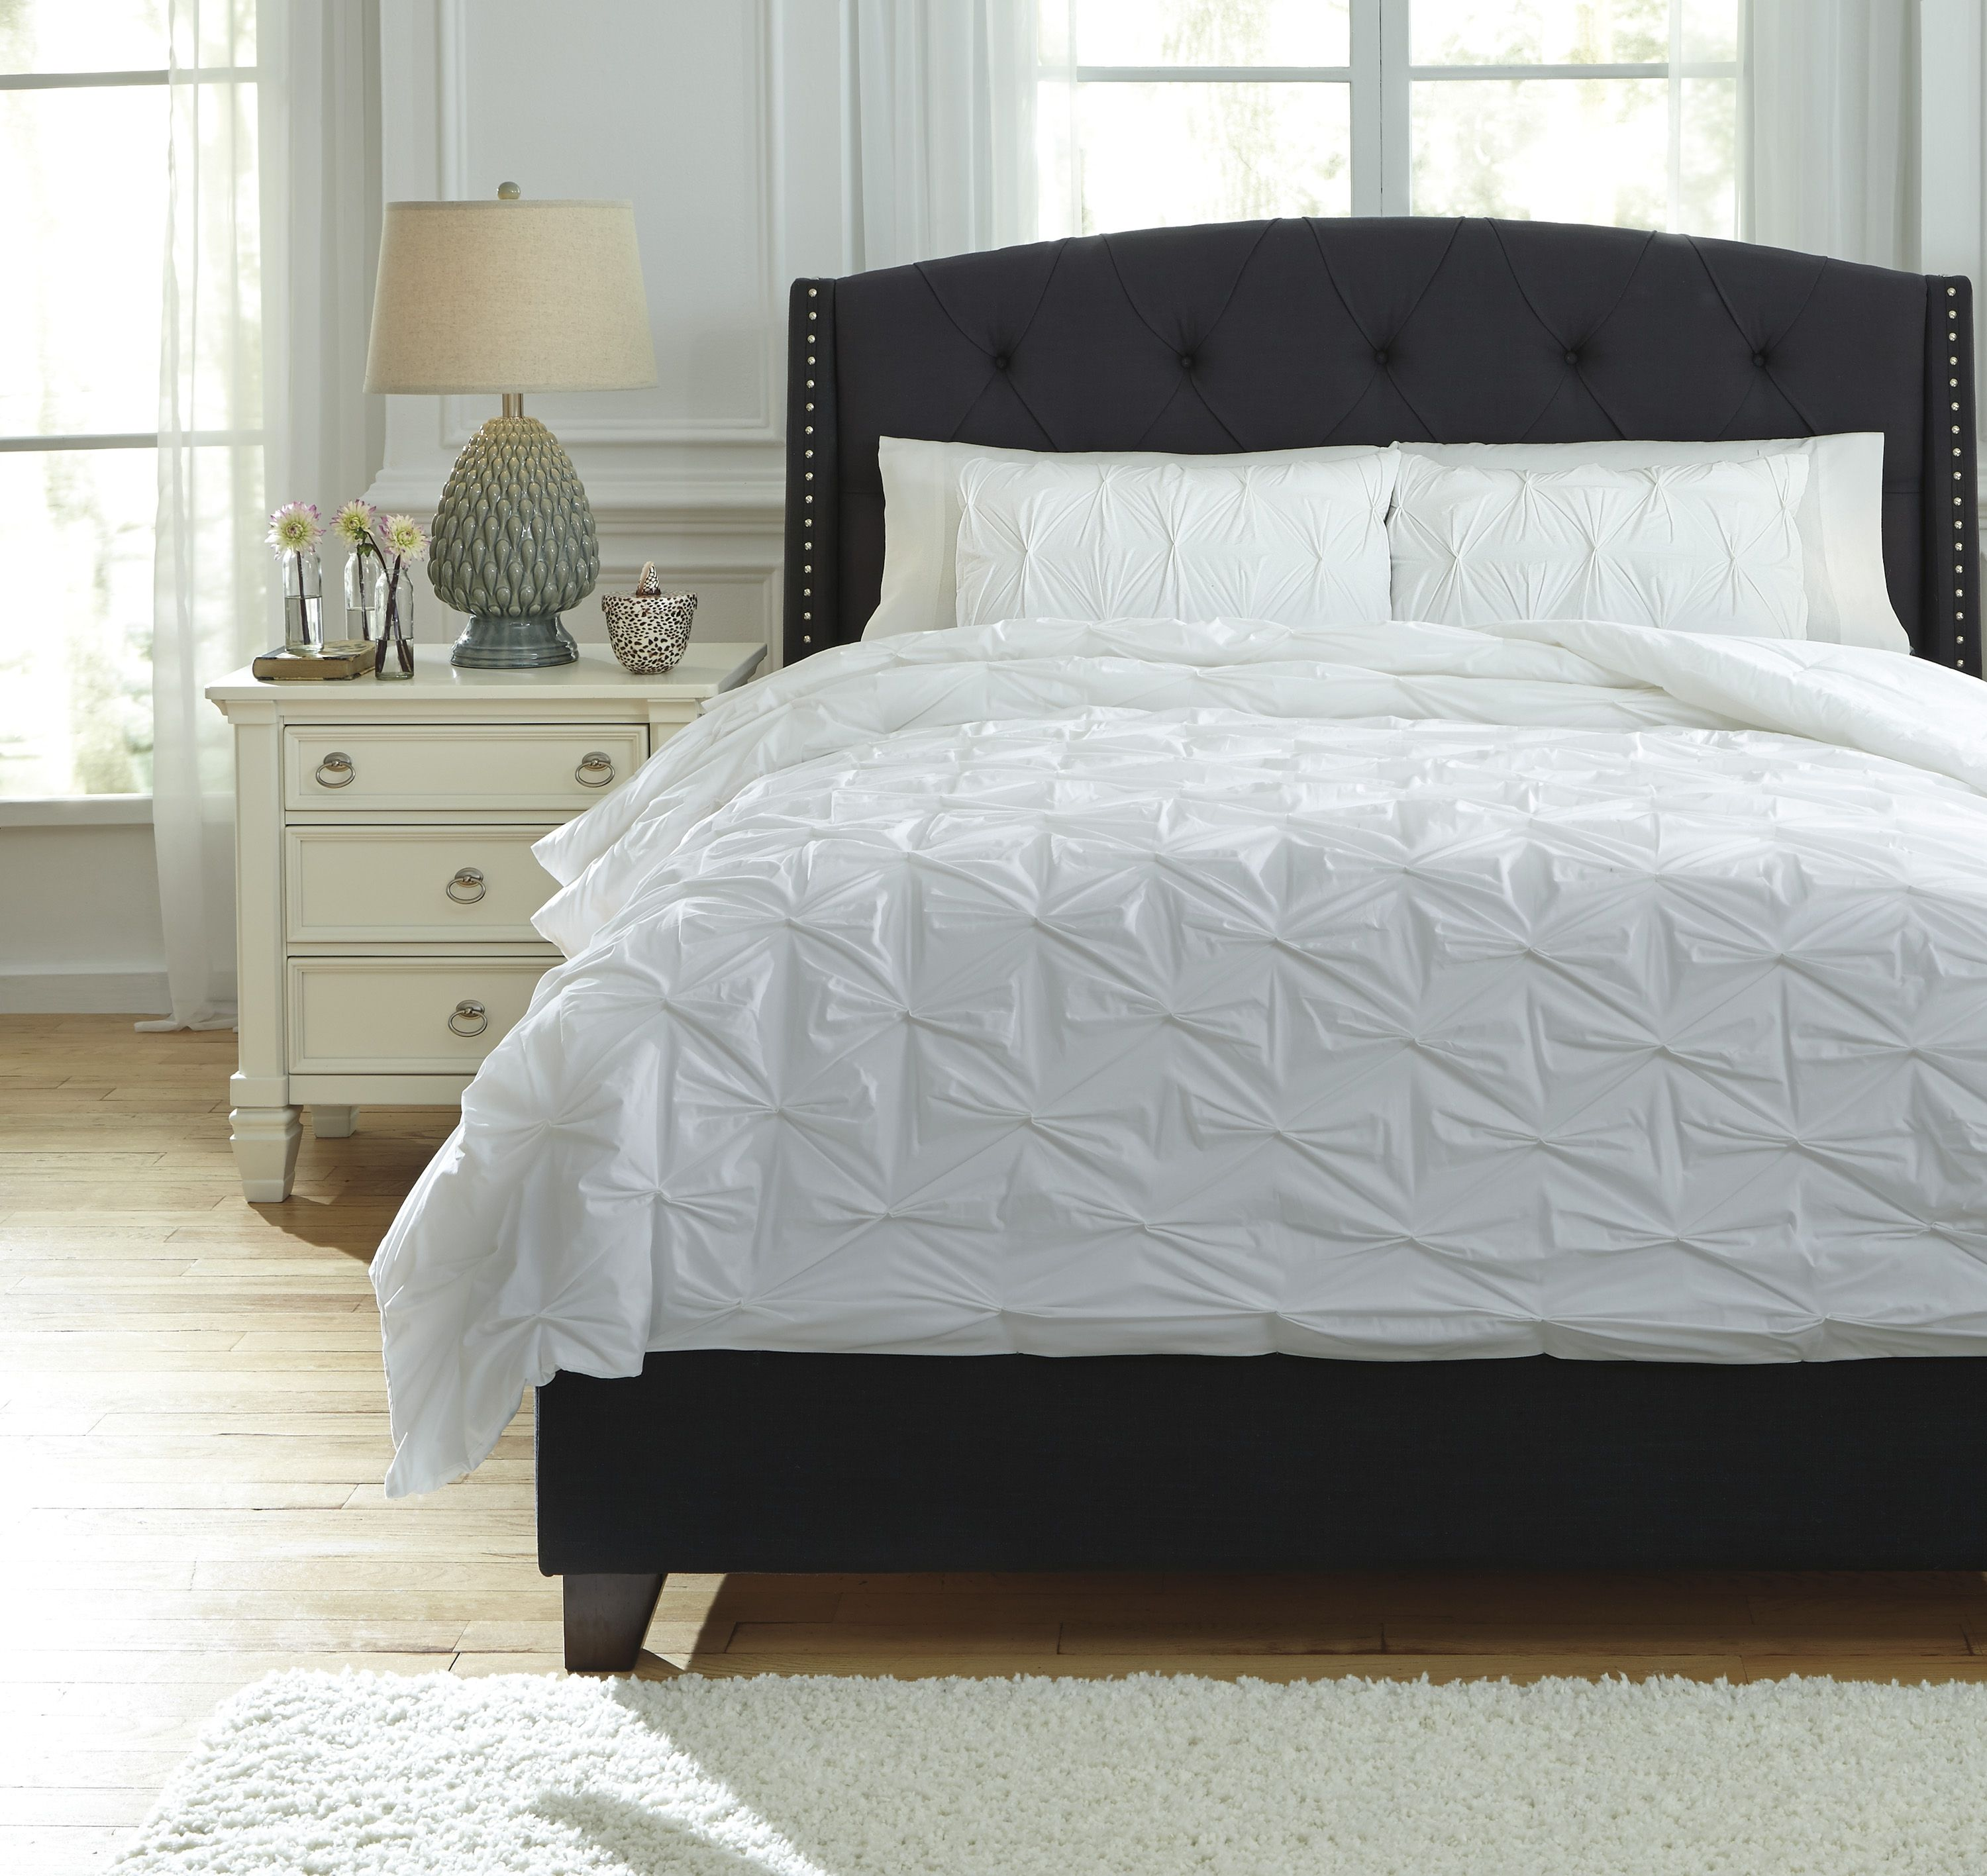 Rimy Queen Comforter Set In White By Ashley In 2020 Comforter Sets King Comforter Sets Gray Bedroom Walls